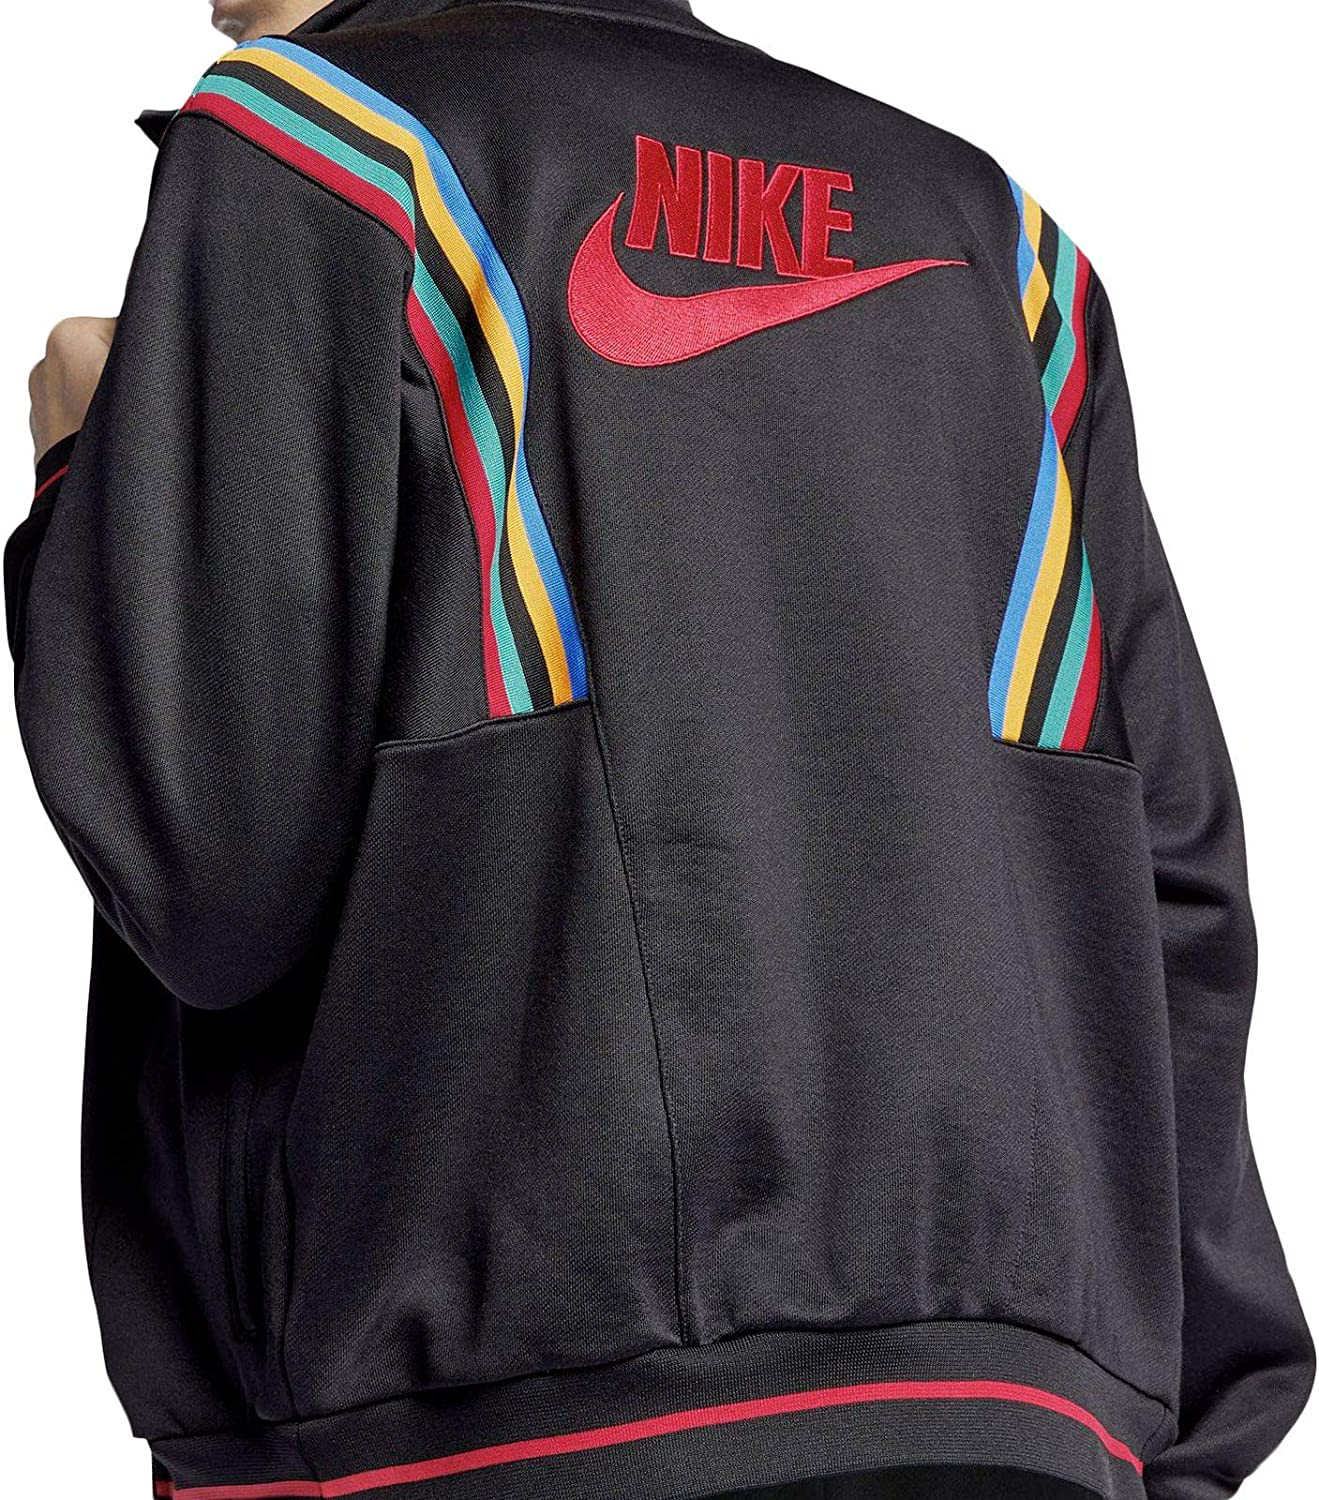 Amazon Com Nike Sportswear Re Issue French Terry Men S Jacket X Large Clothing [ 1500 x 1324 Pixel ]